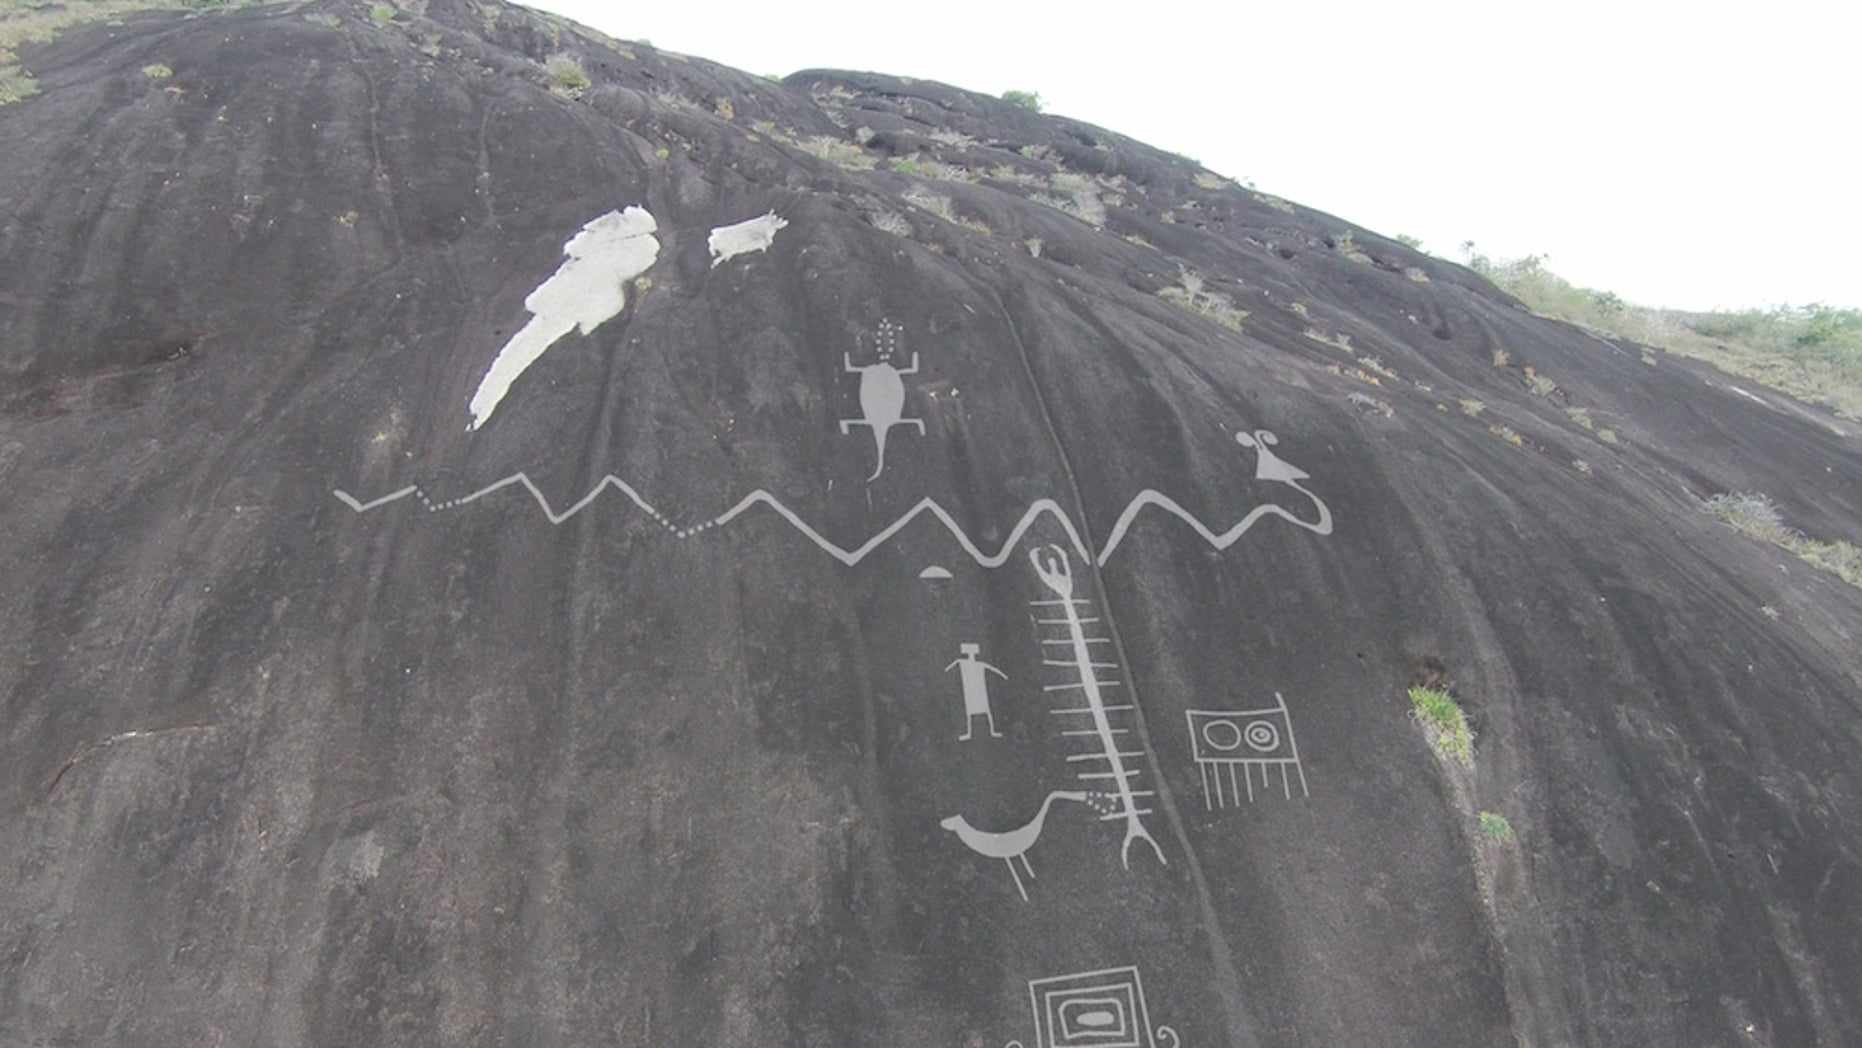 A drone took this photo of rock art high on a mountain. Researchers used digital overlay to highlight the art in this image.